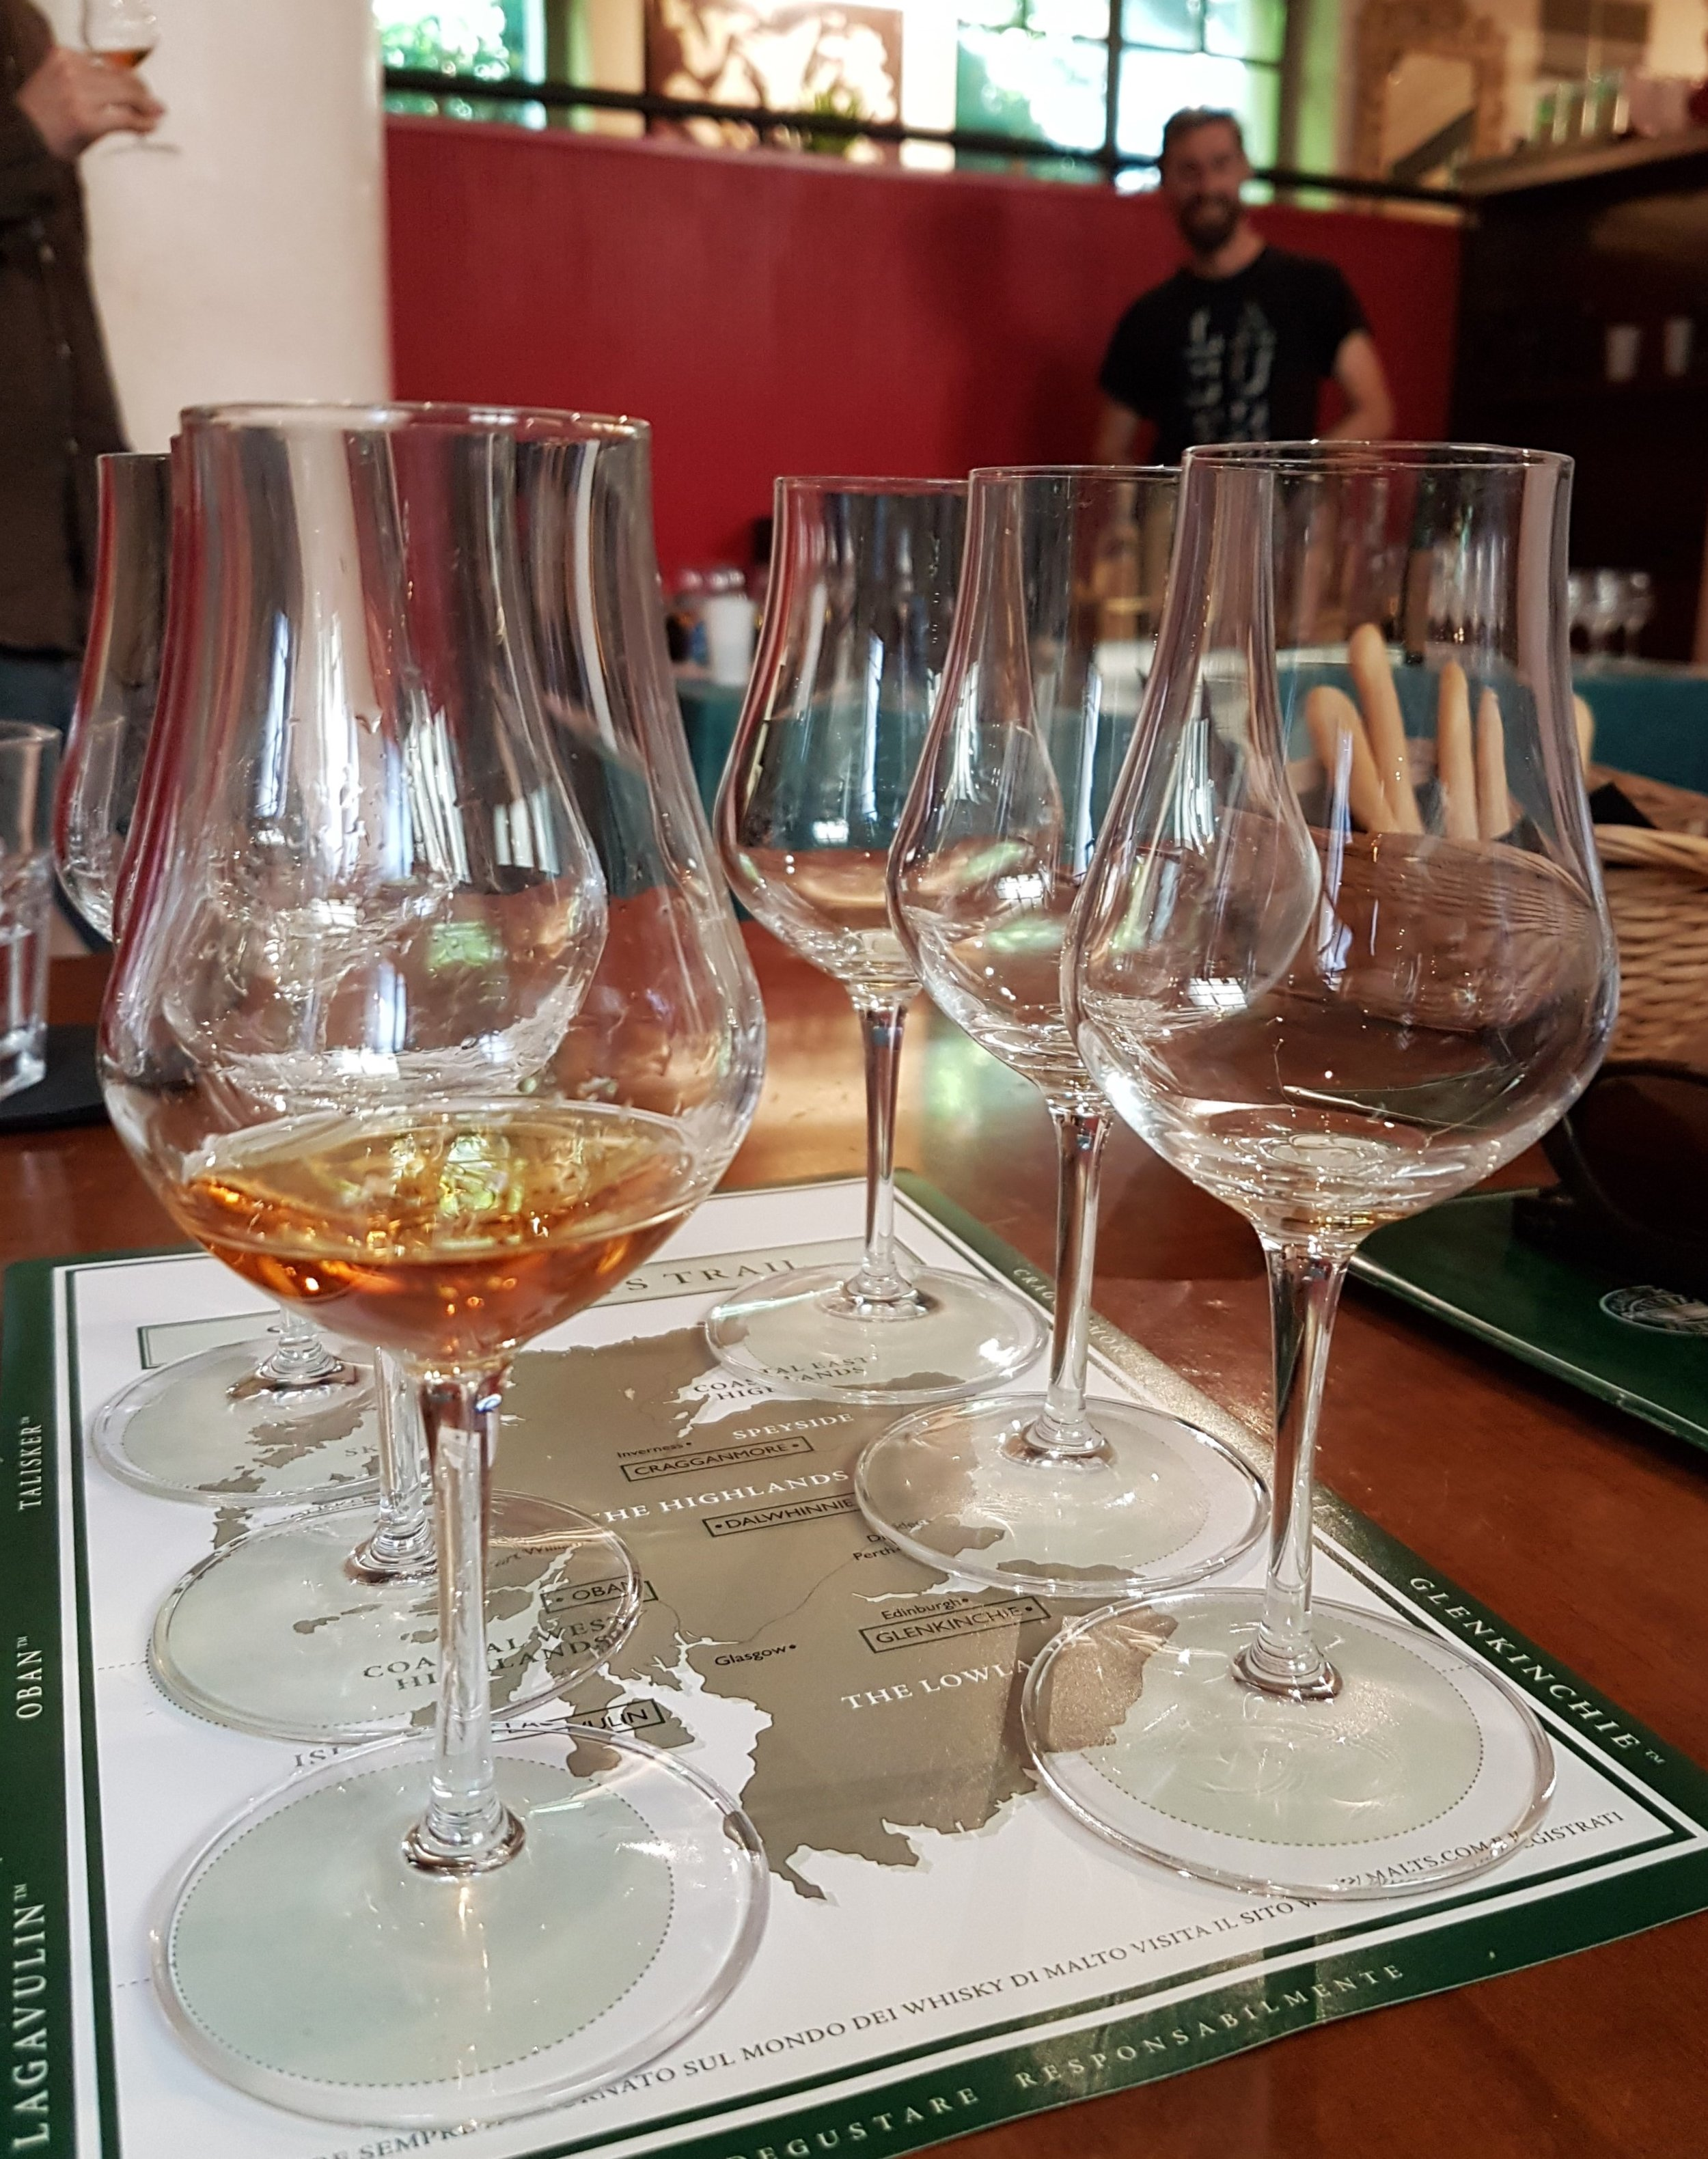 6 drams for 6 scotch whisky regions